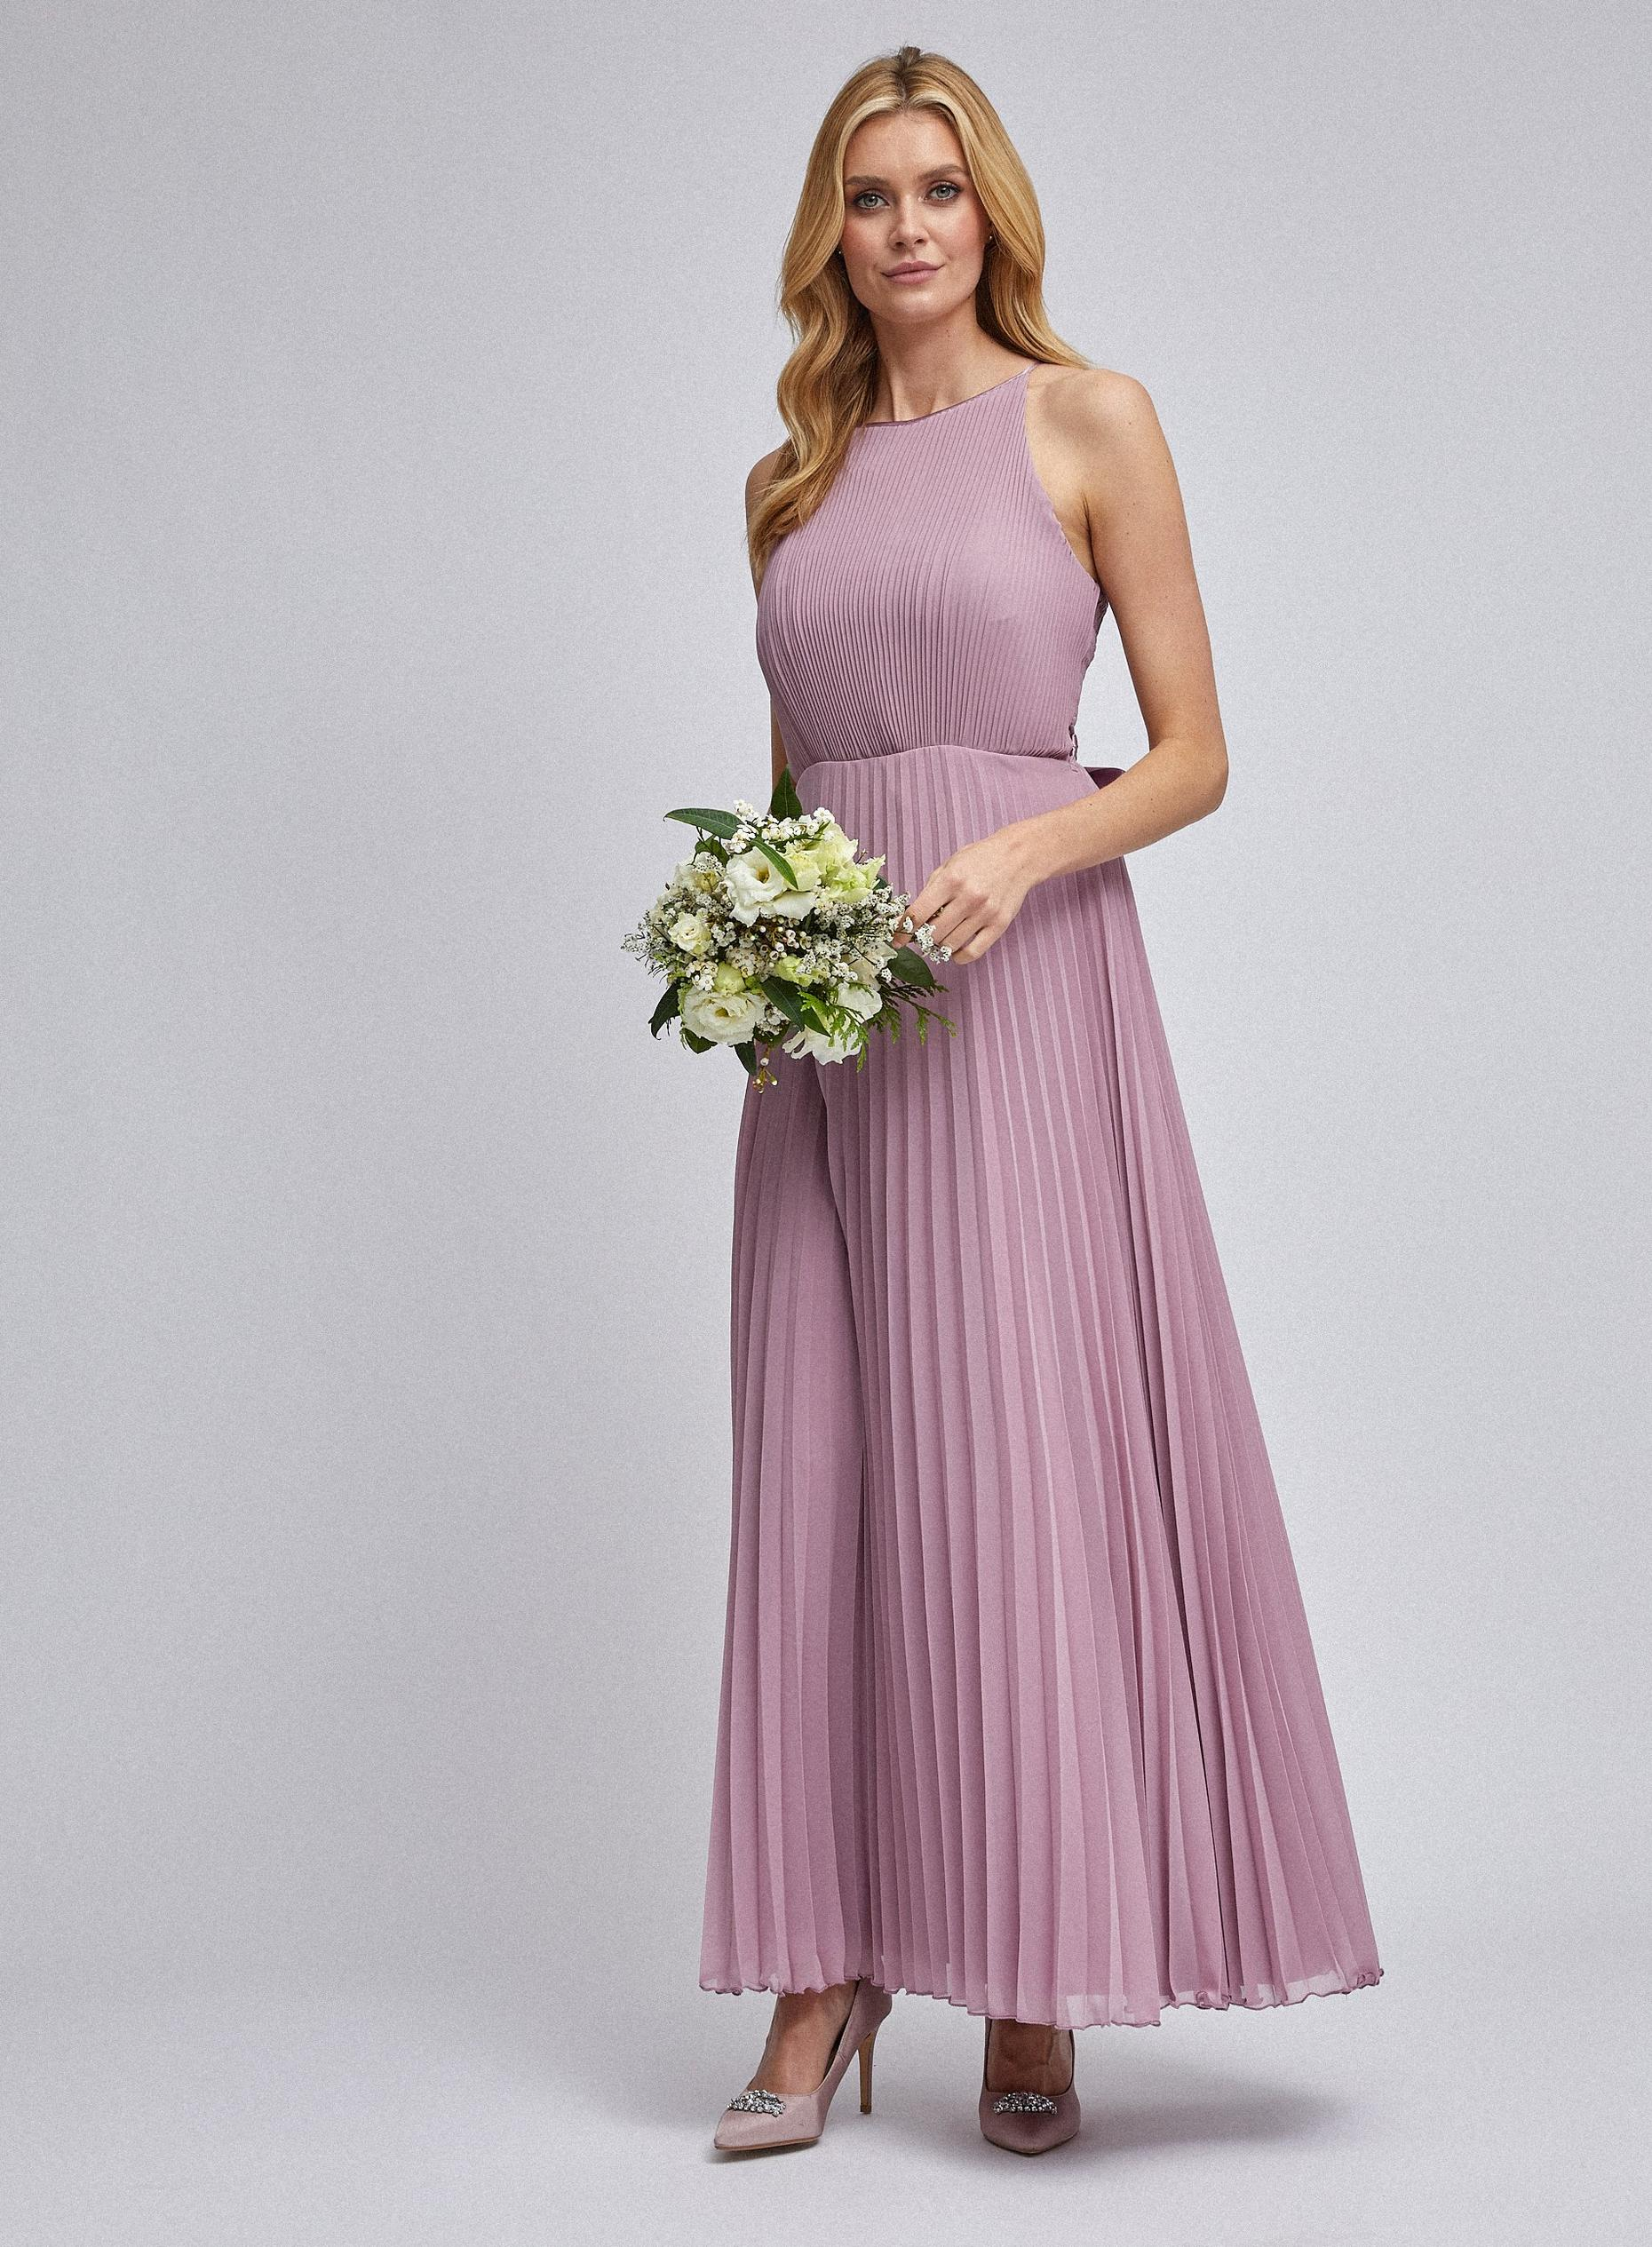 Lucy Rose Pink Pleated Maxi Dress